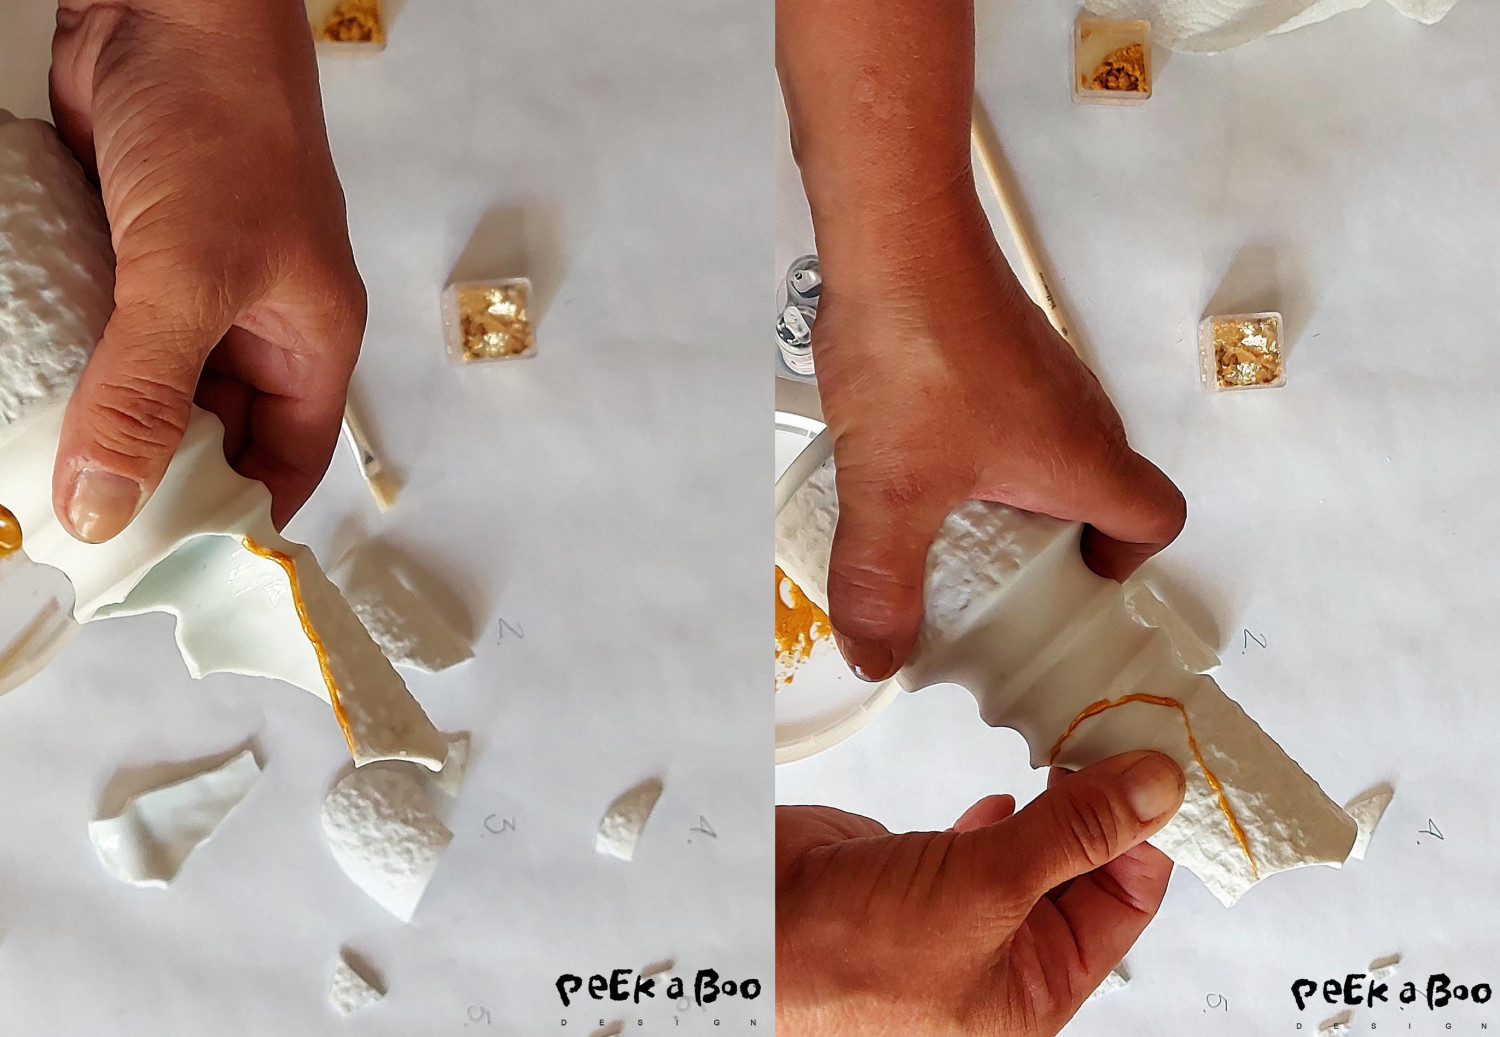 Hold the cut to the vase, the glue dries really quick so after 1 minute it is fixed.